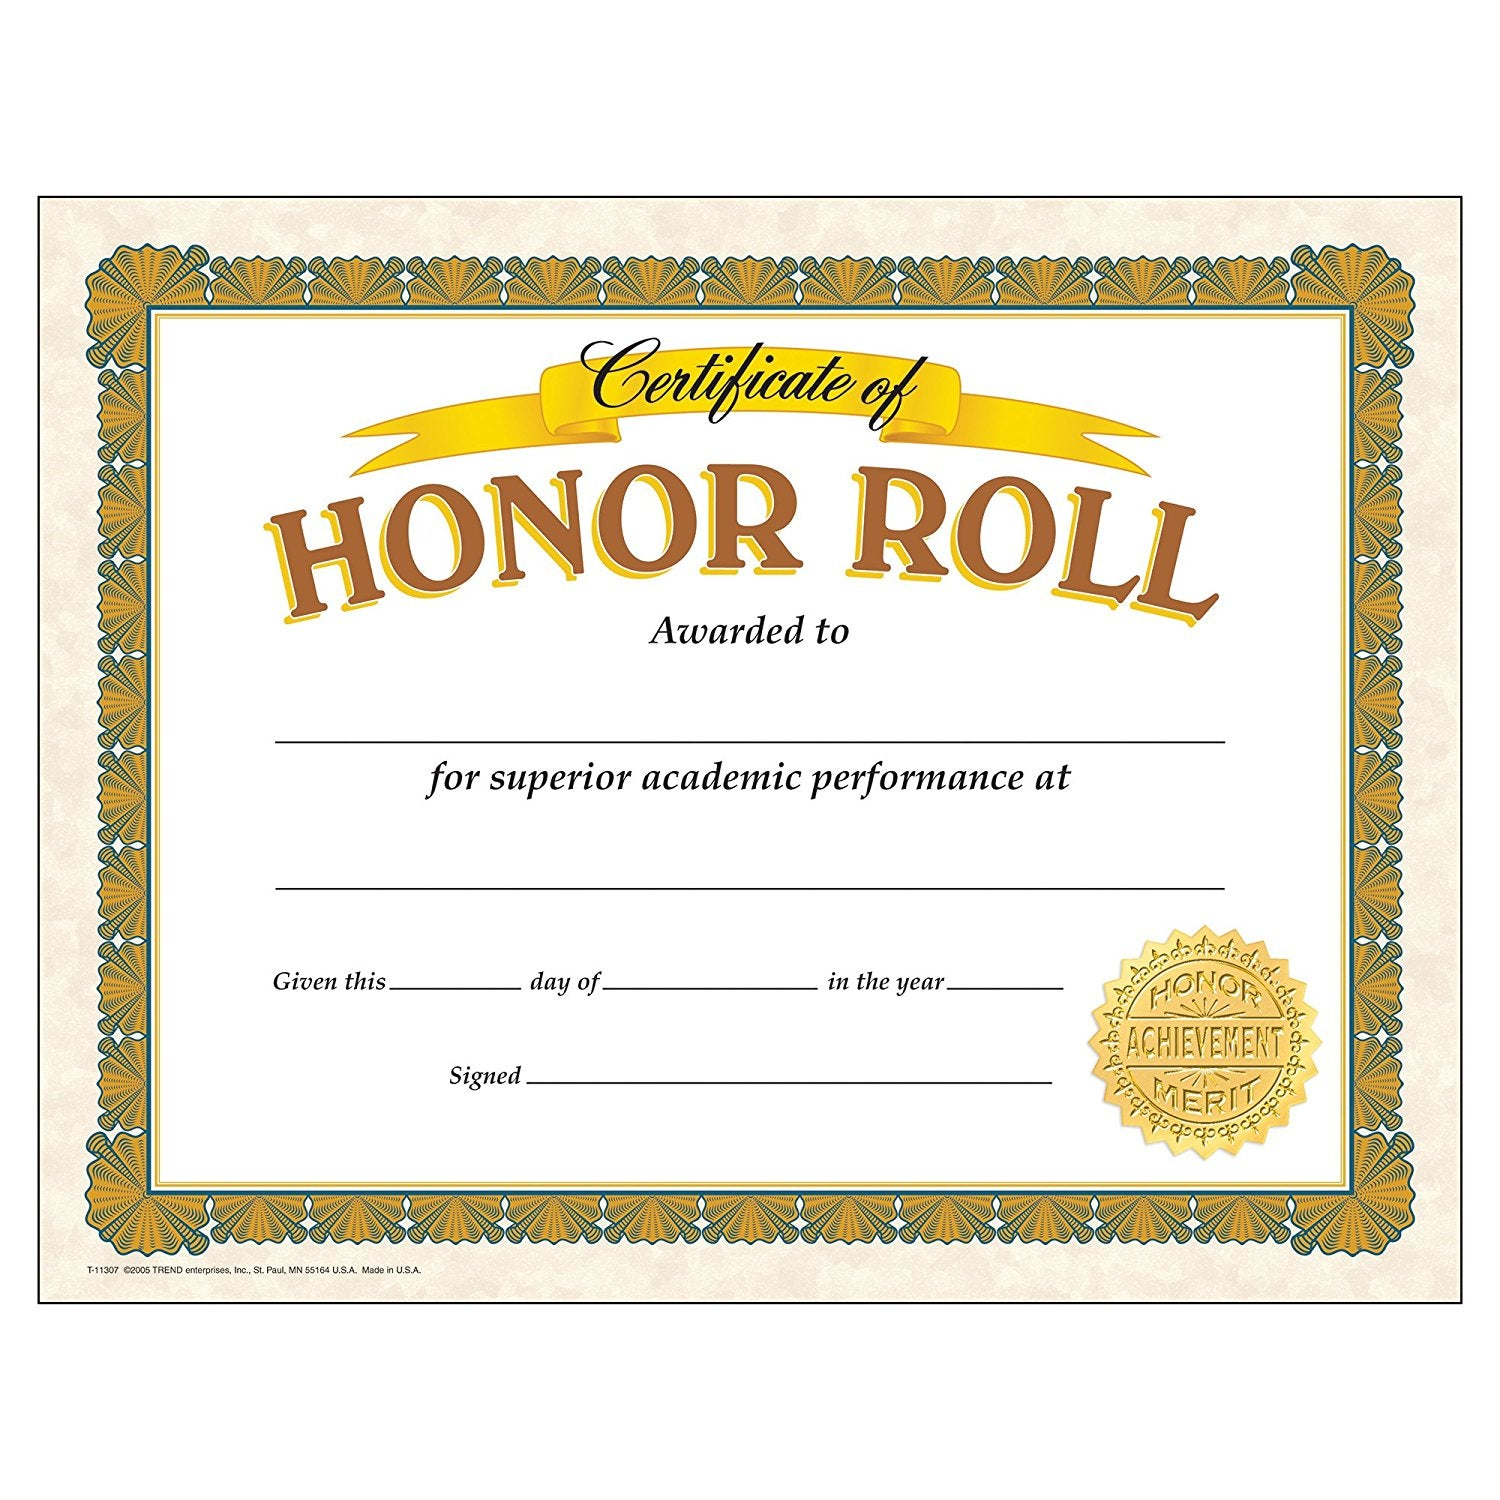 Certificate of Honor Roll (Pack of 30) T-11307